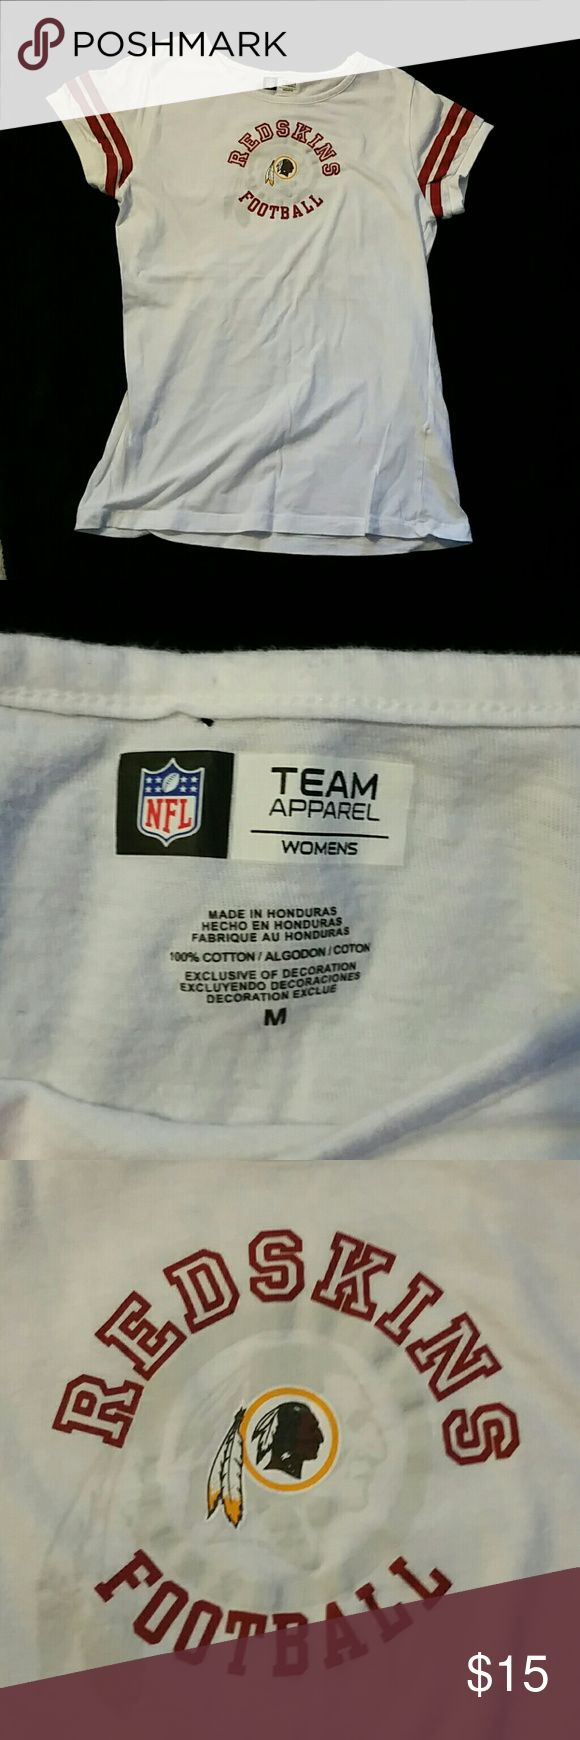 Redskin's T-shirt 100% cotton with a small hole (last Pic) NFL team apparel  Tops Tees - Short Sleeve